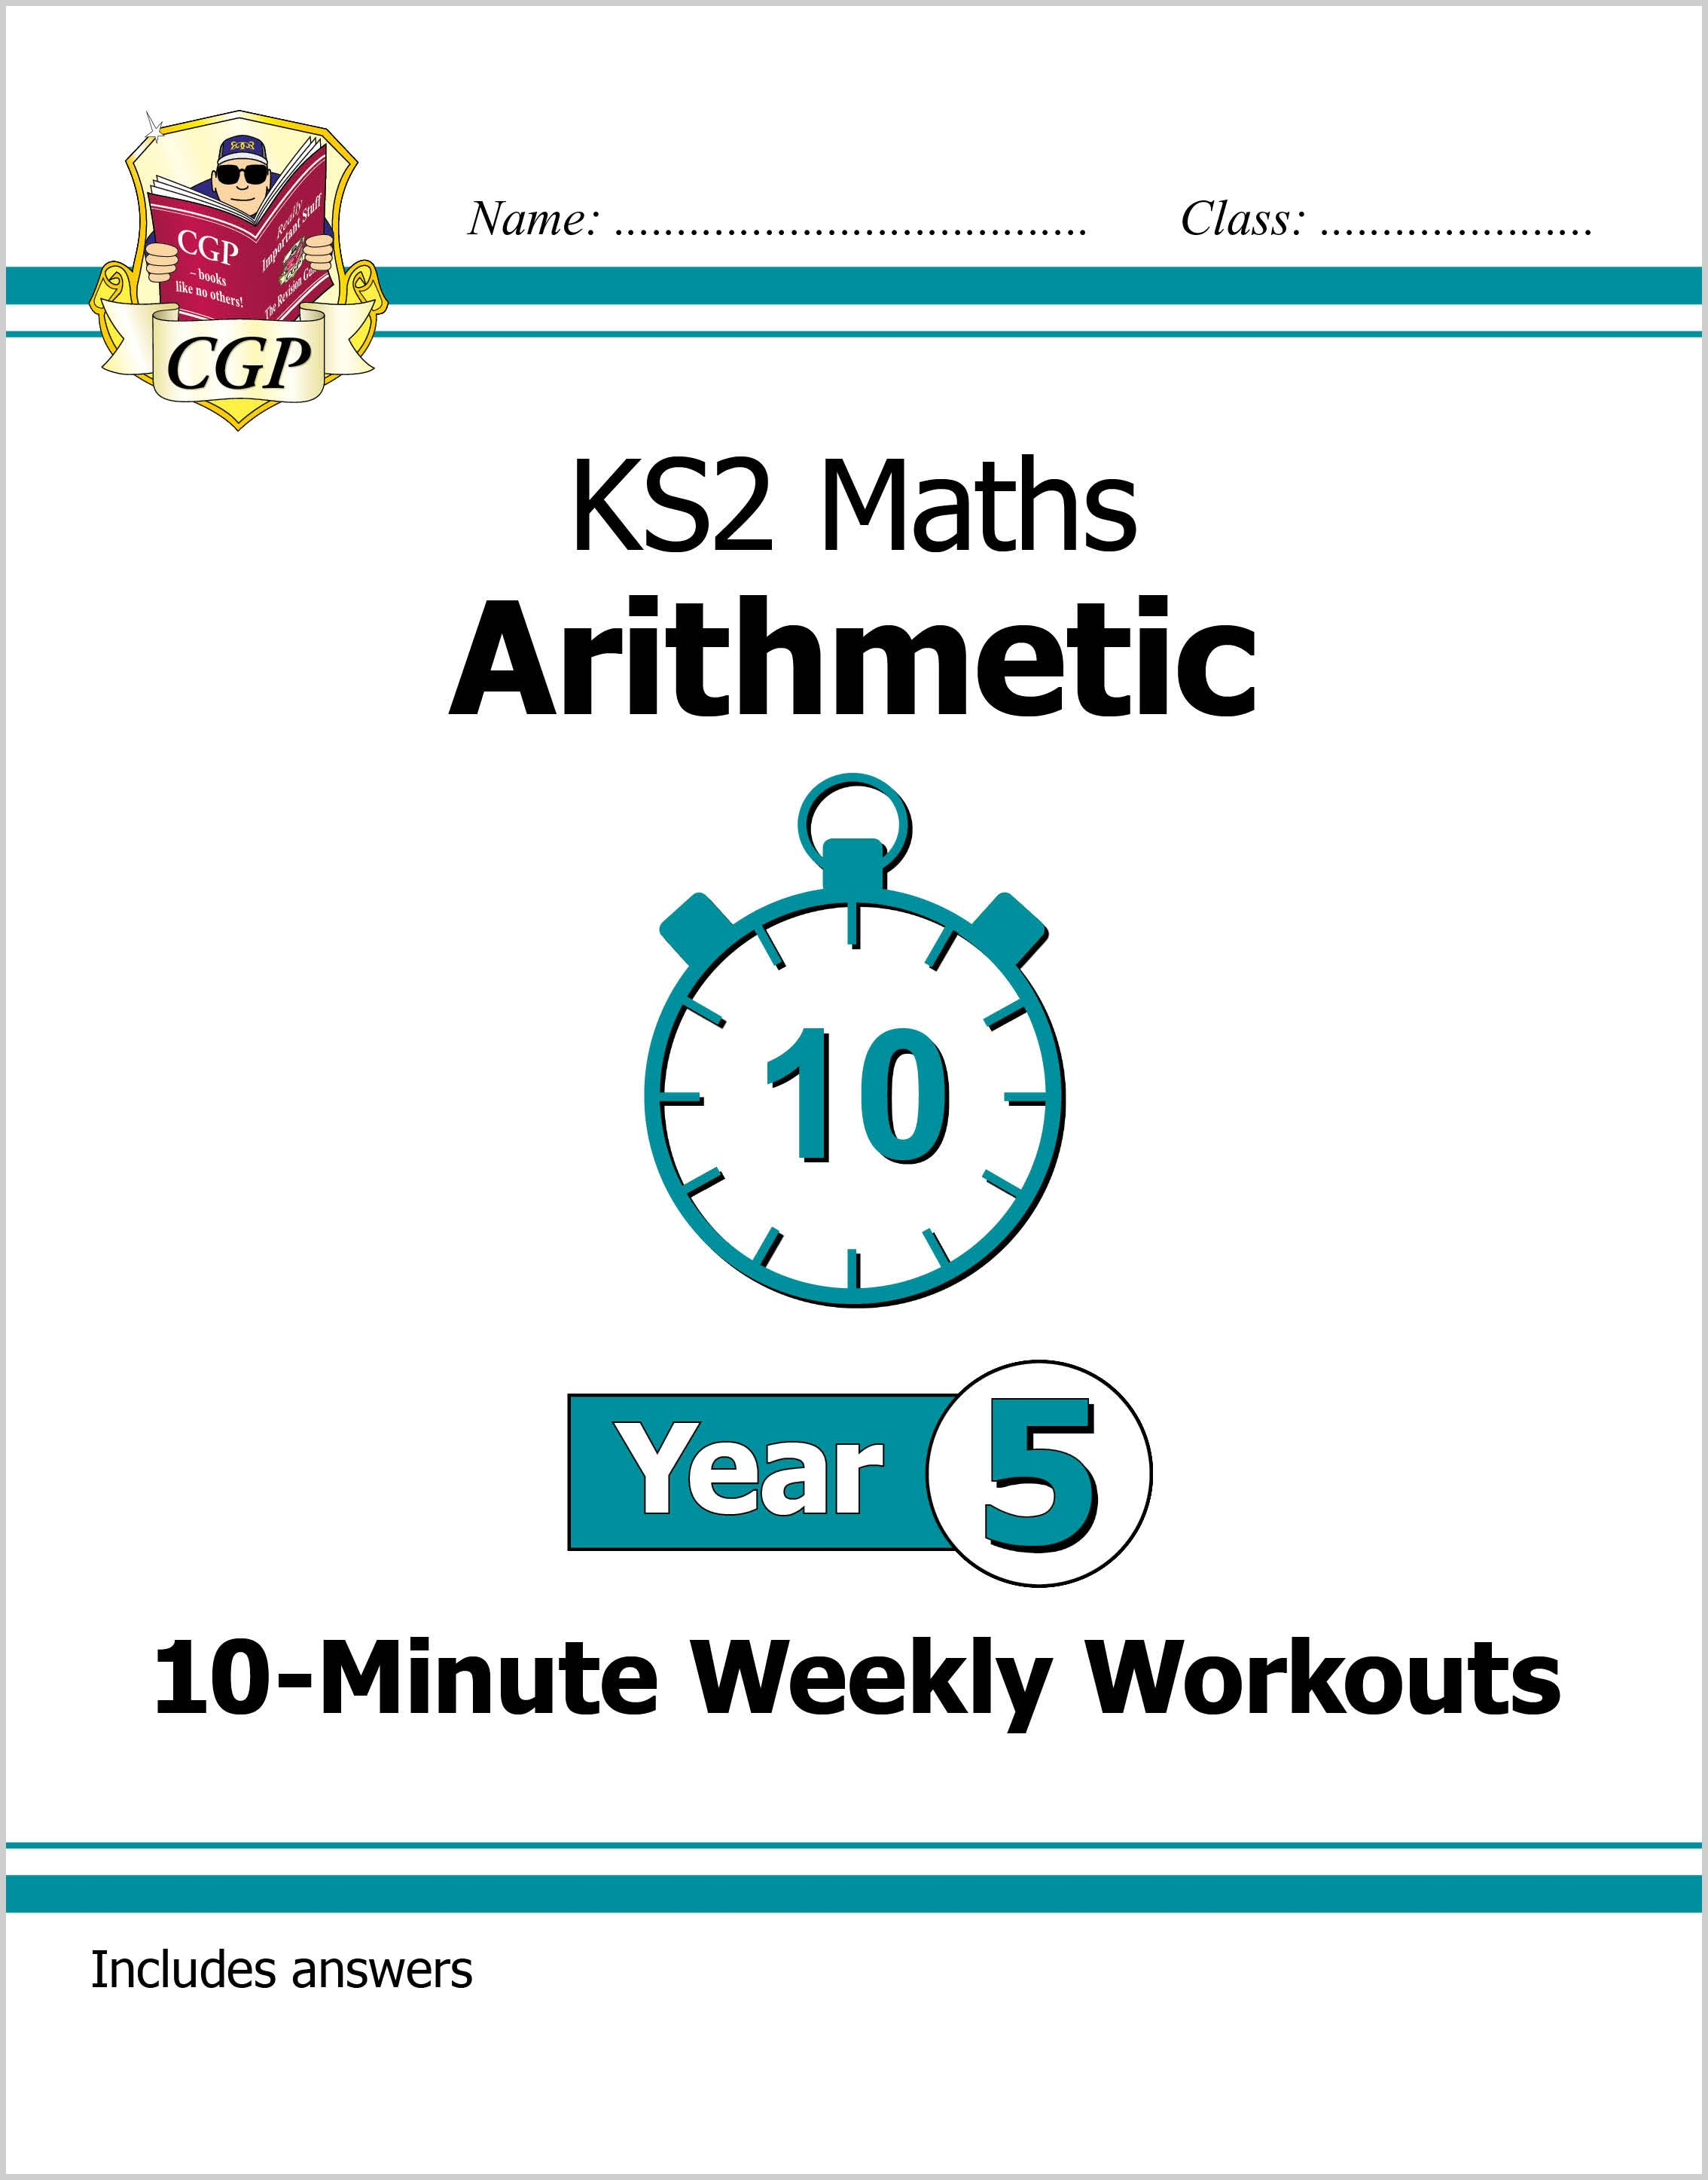 M5ARXW21 - New KS2 Maths 10-Minute Weekly Workouts: Arithmetic - Year 5